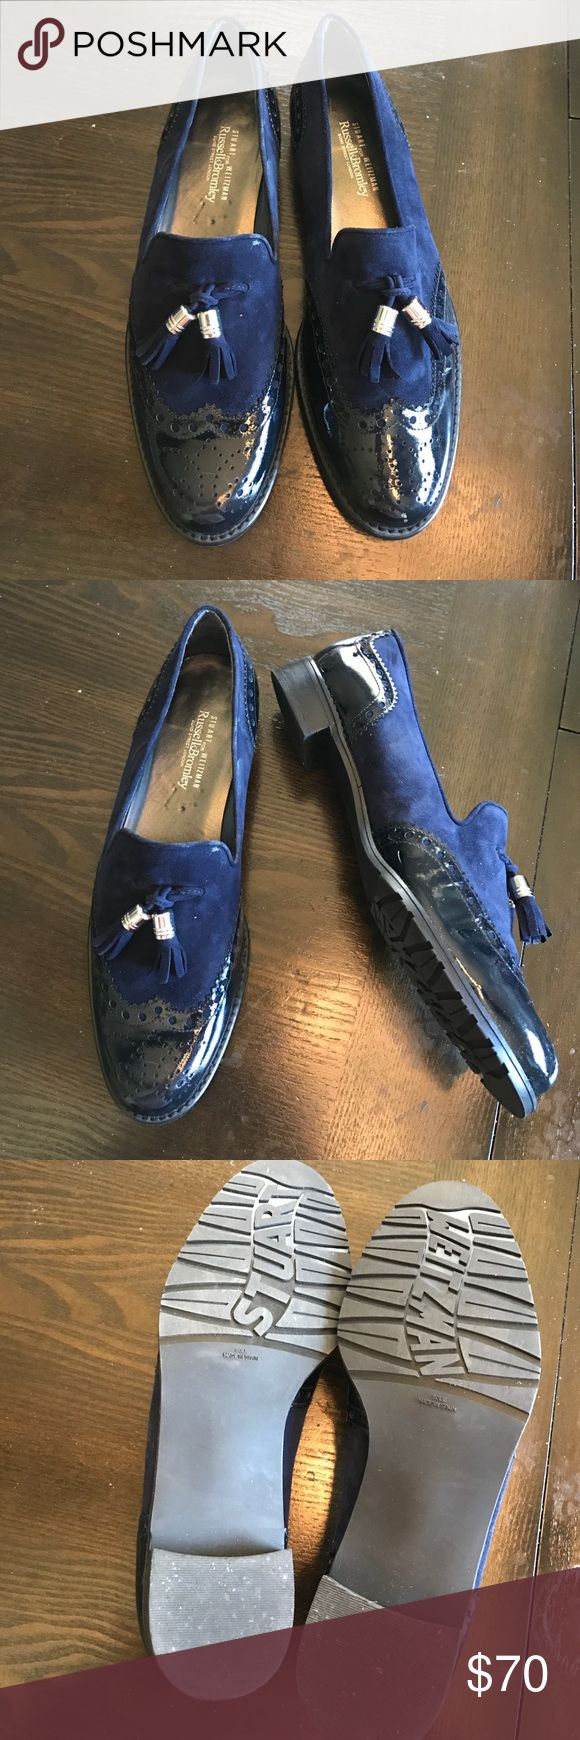 Stuart weitzman for Russell&Bromley Like new condition. Stuart Weitzman Shoes Flats & Loafers